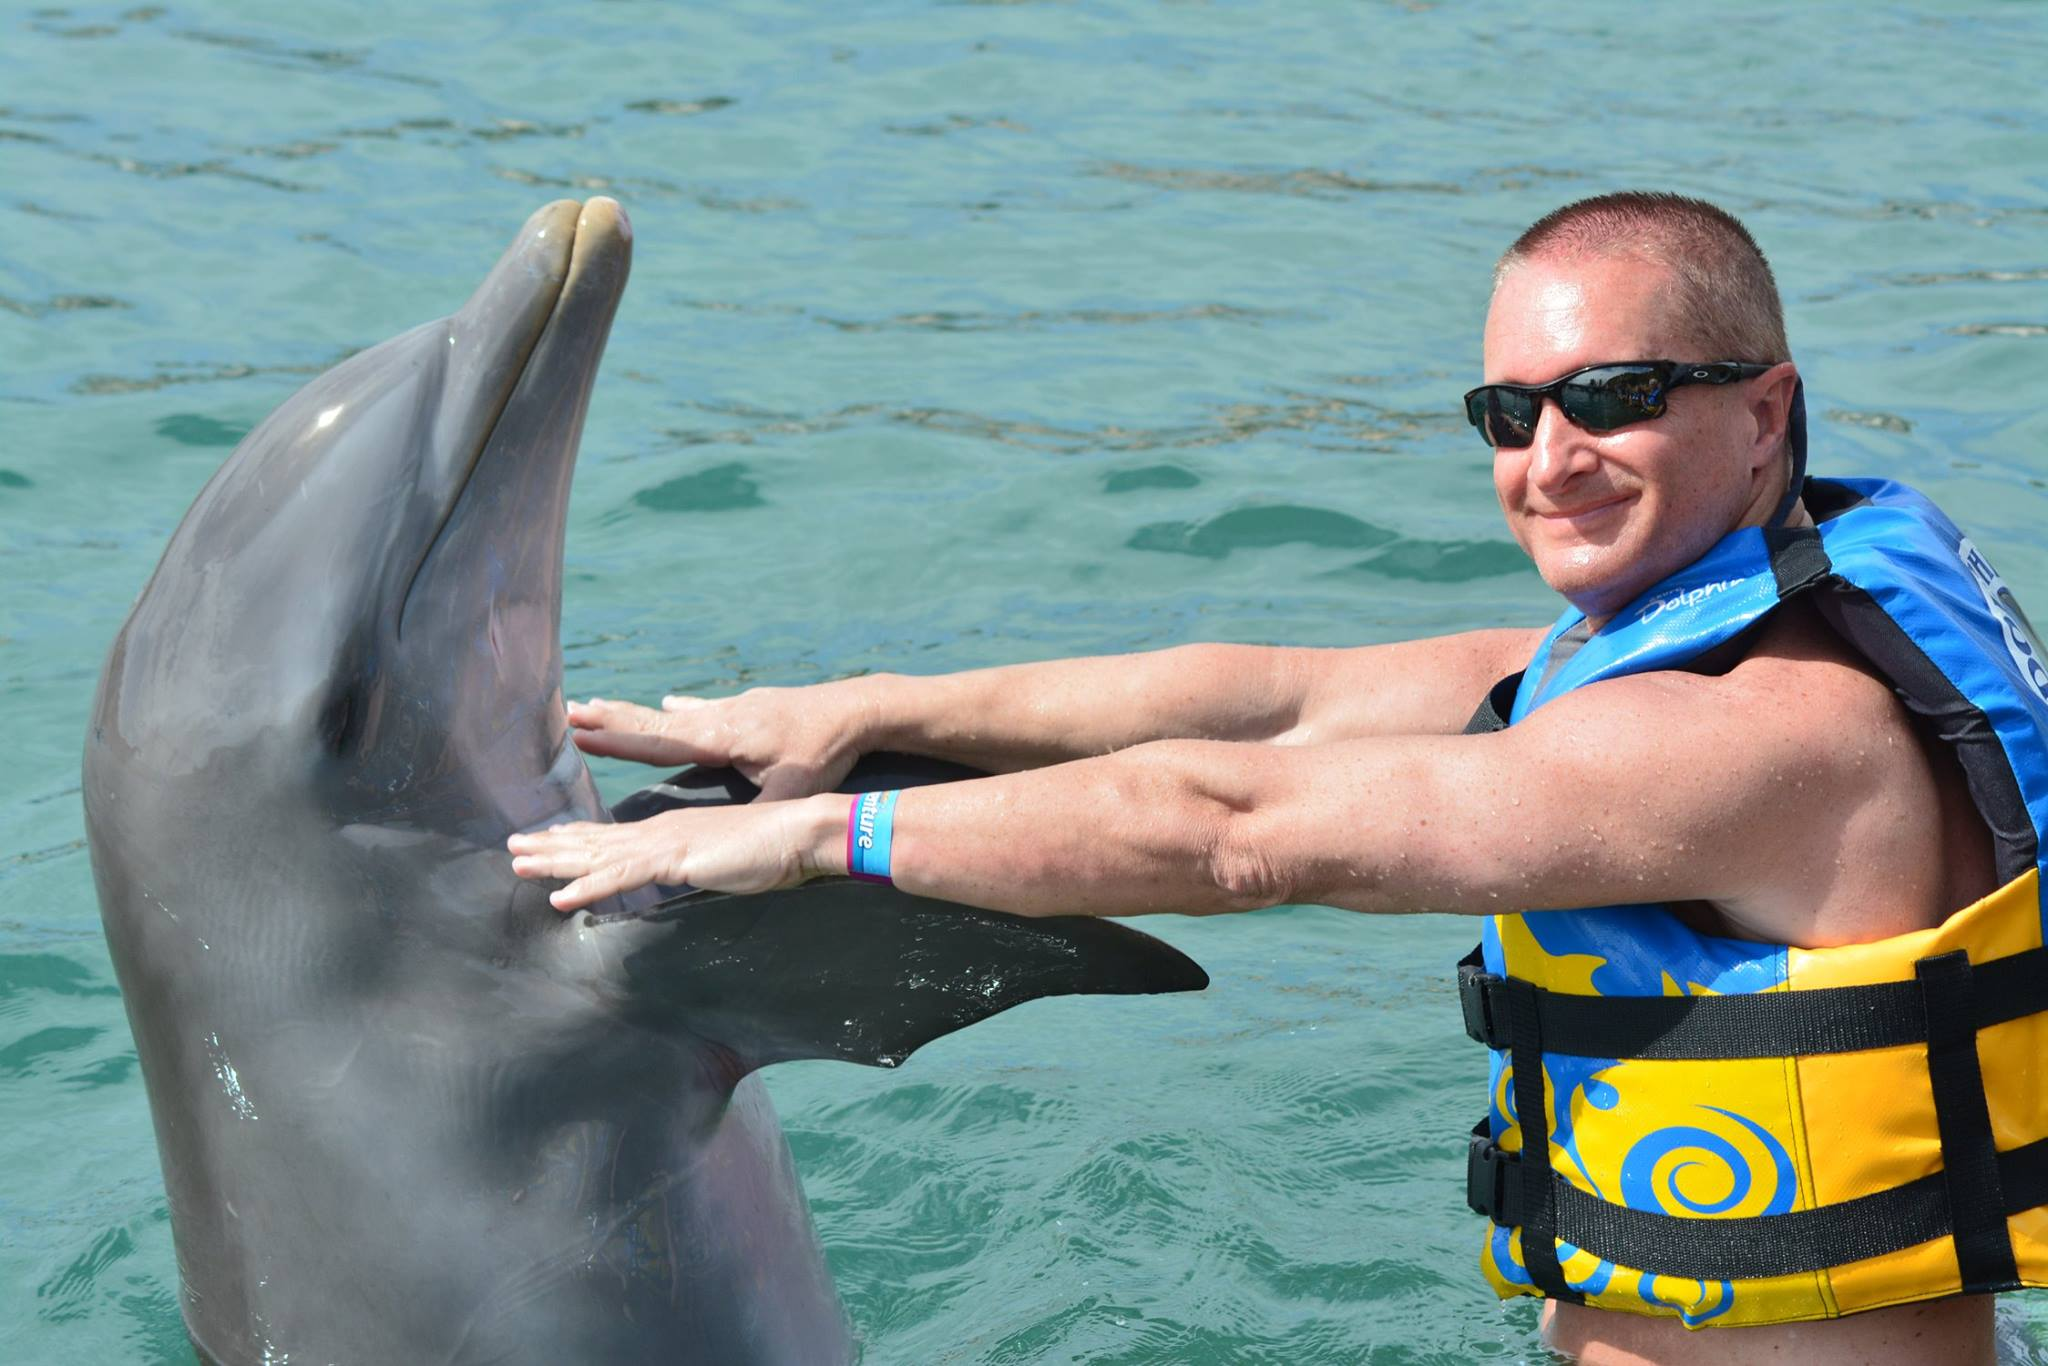 Jeff Buffo swims with dolphins